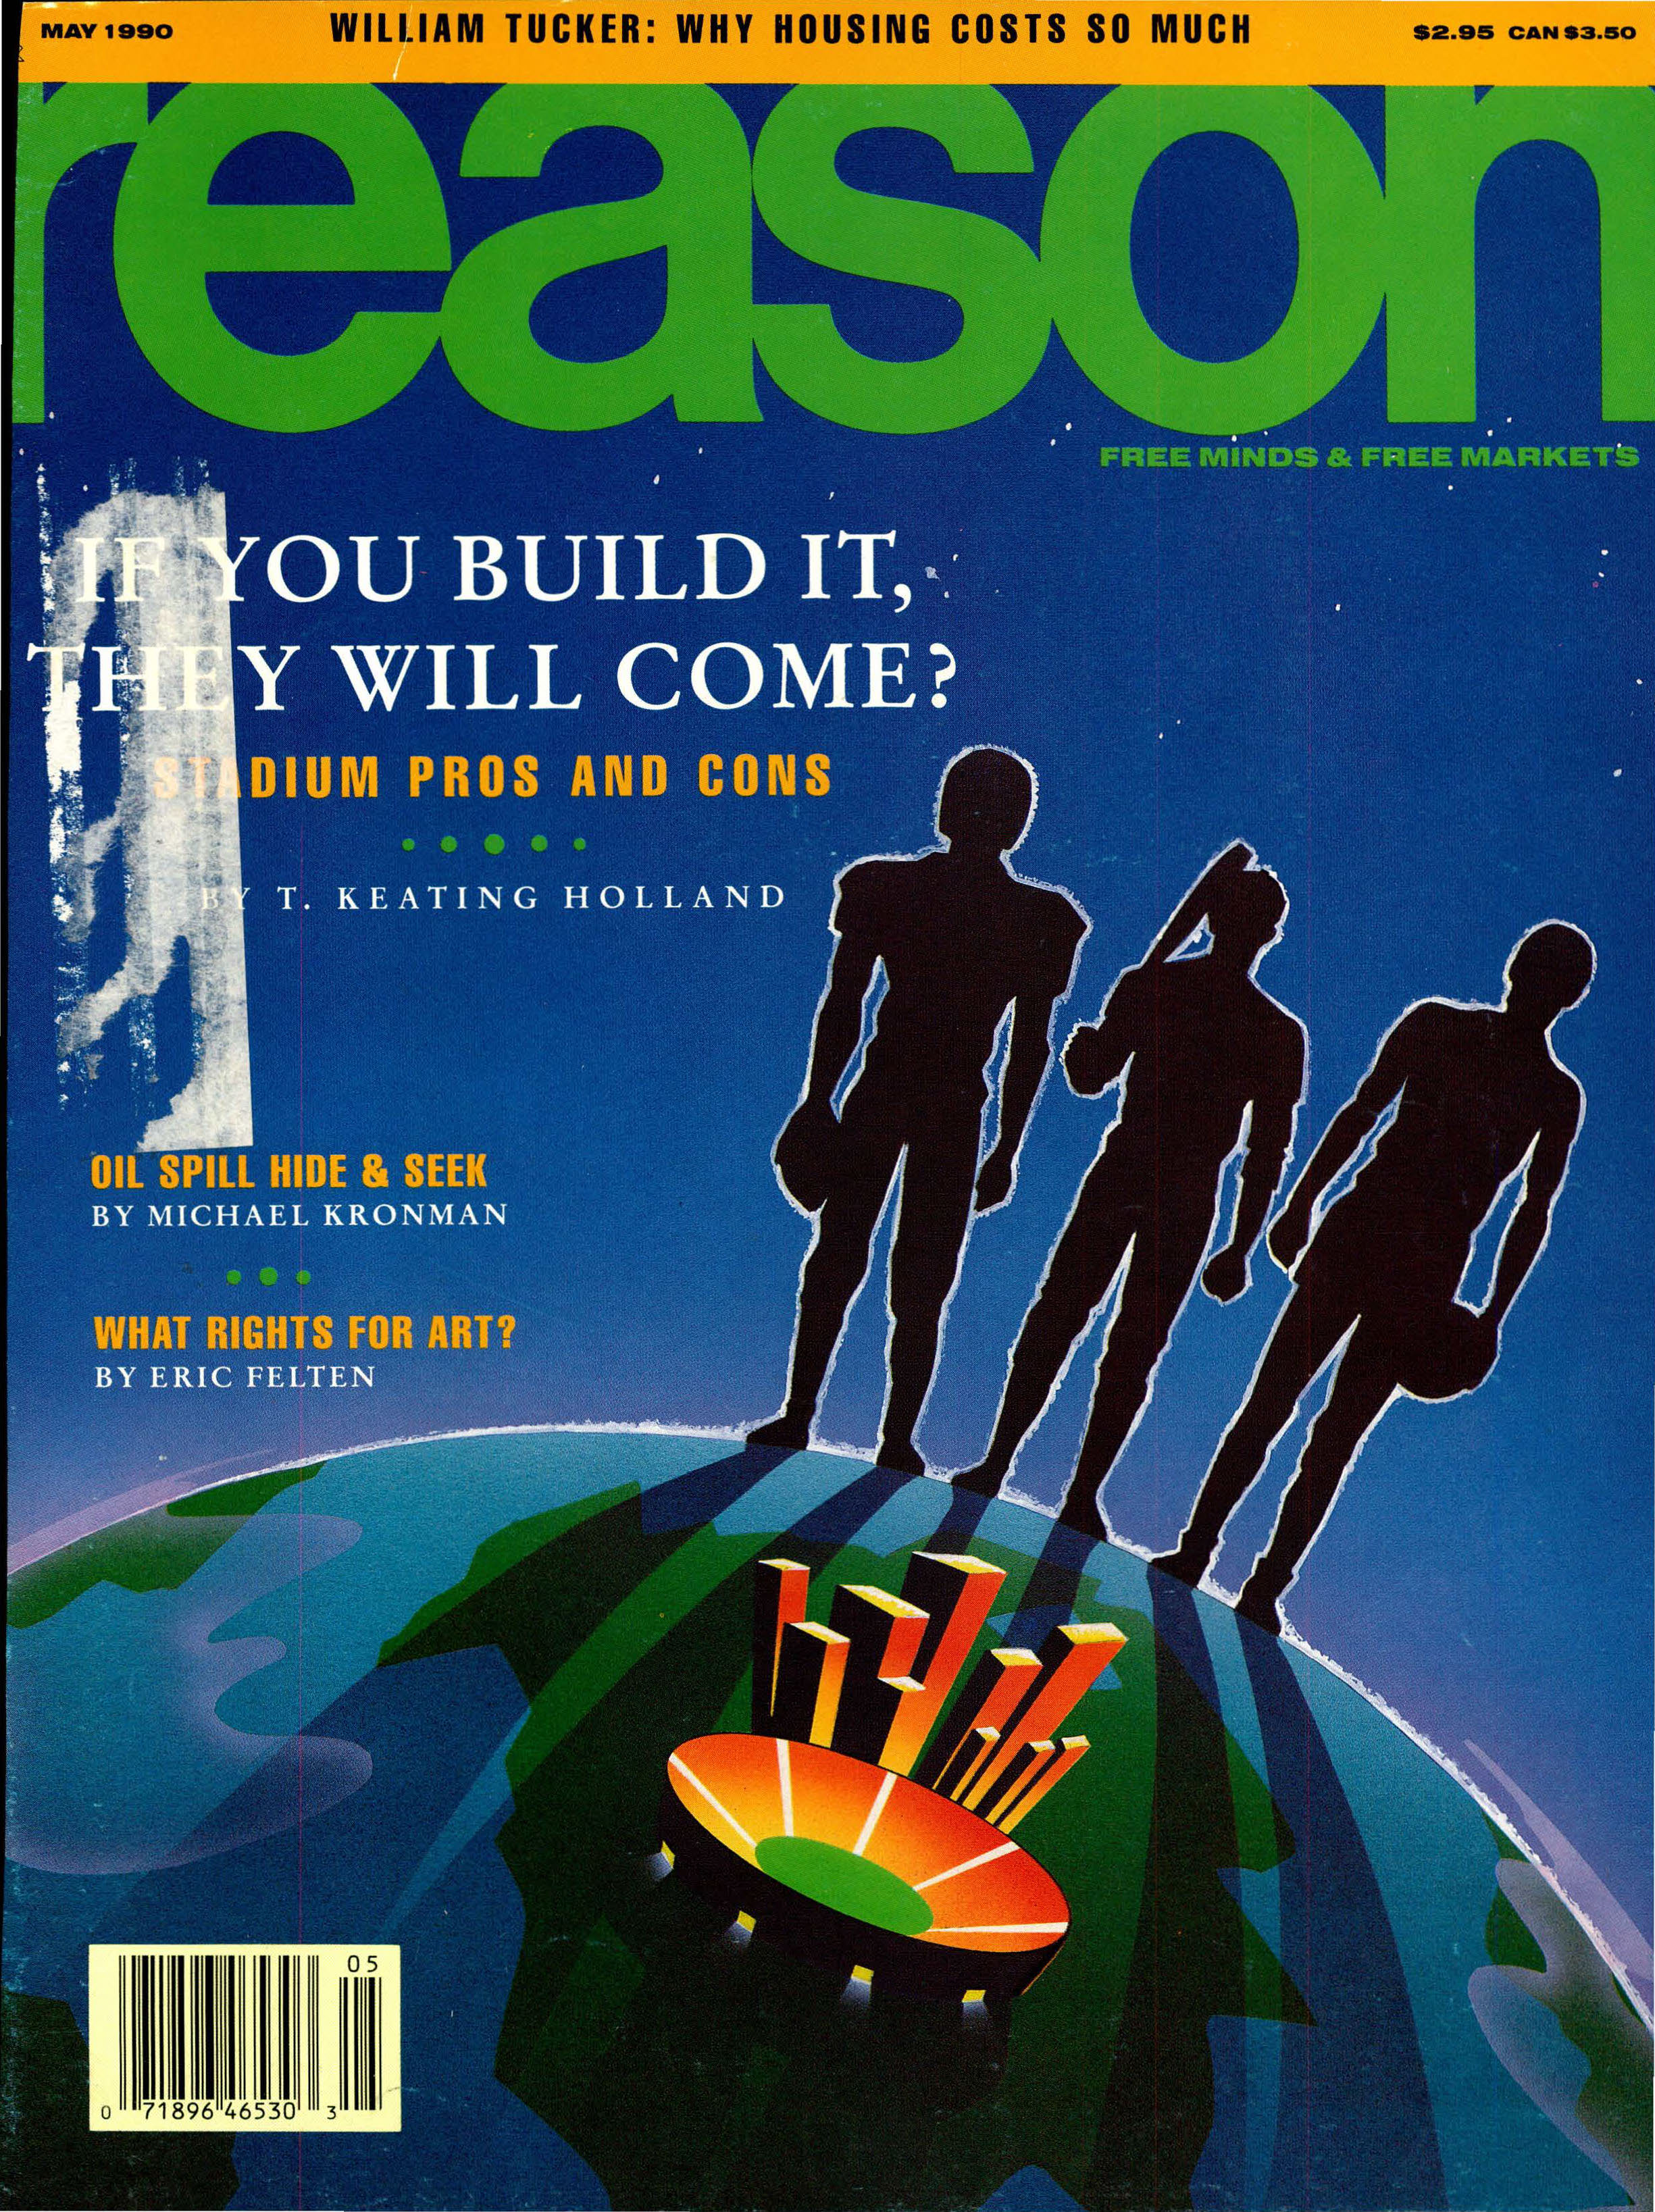 Reason Magazine, May 1990 cover image